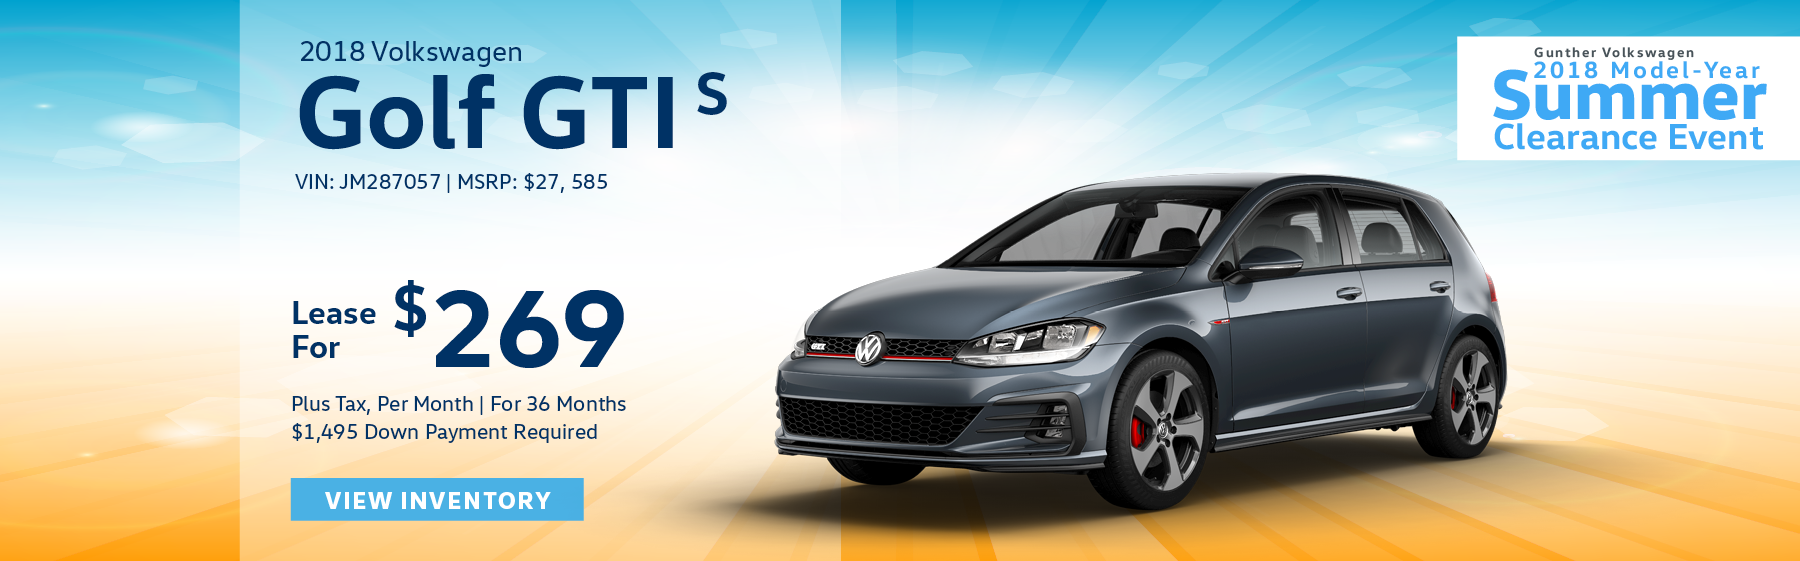 Lease the 2018 Volkswagen Golf GTI S for $269 plus tax for 36 months. $1,495 Down payment required.